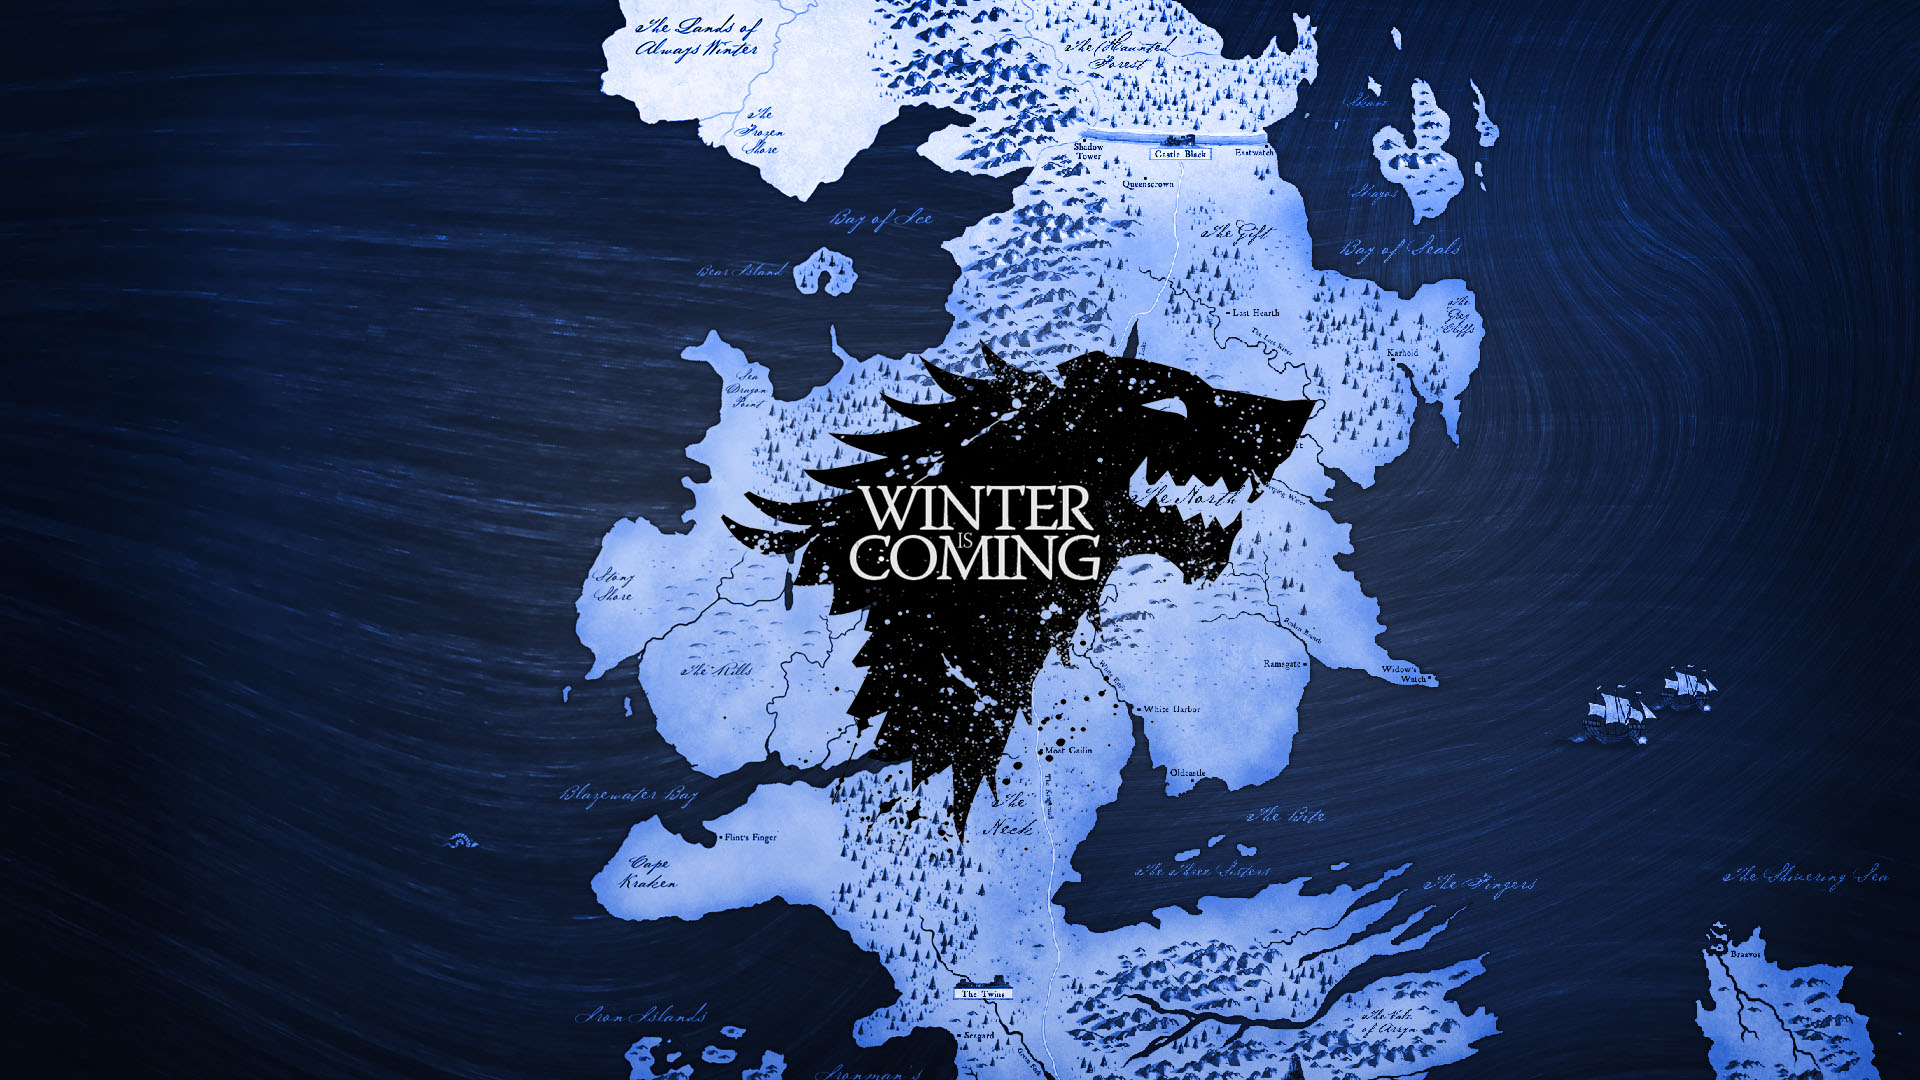 winter is coming game of thrones 1920x1080